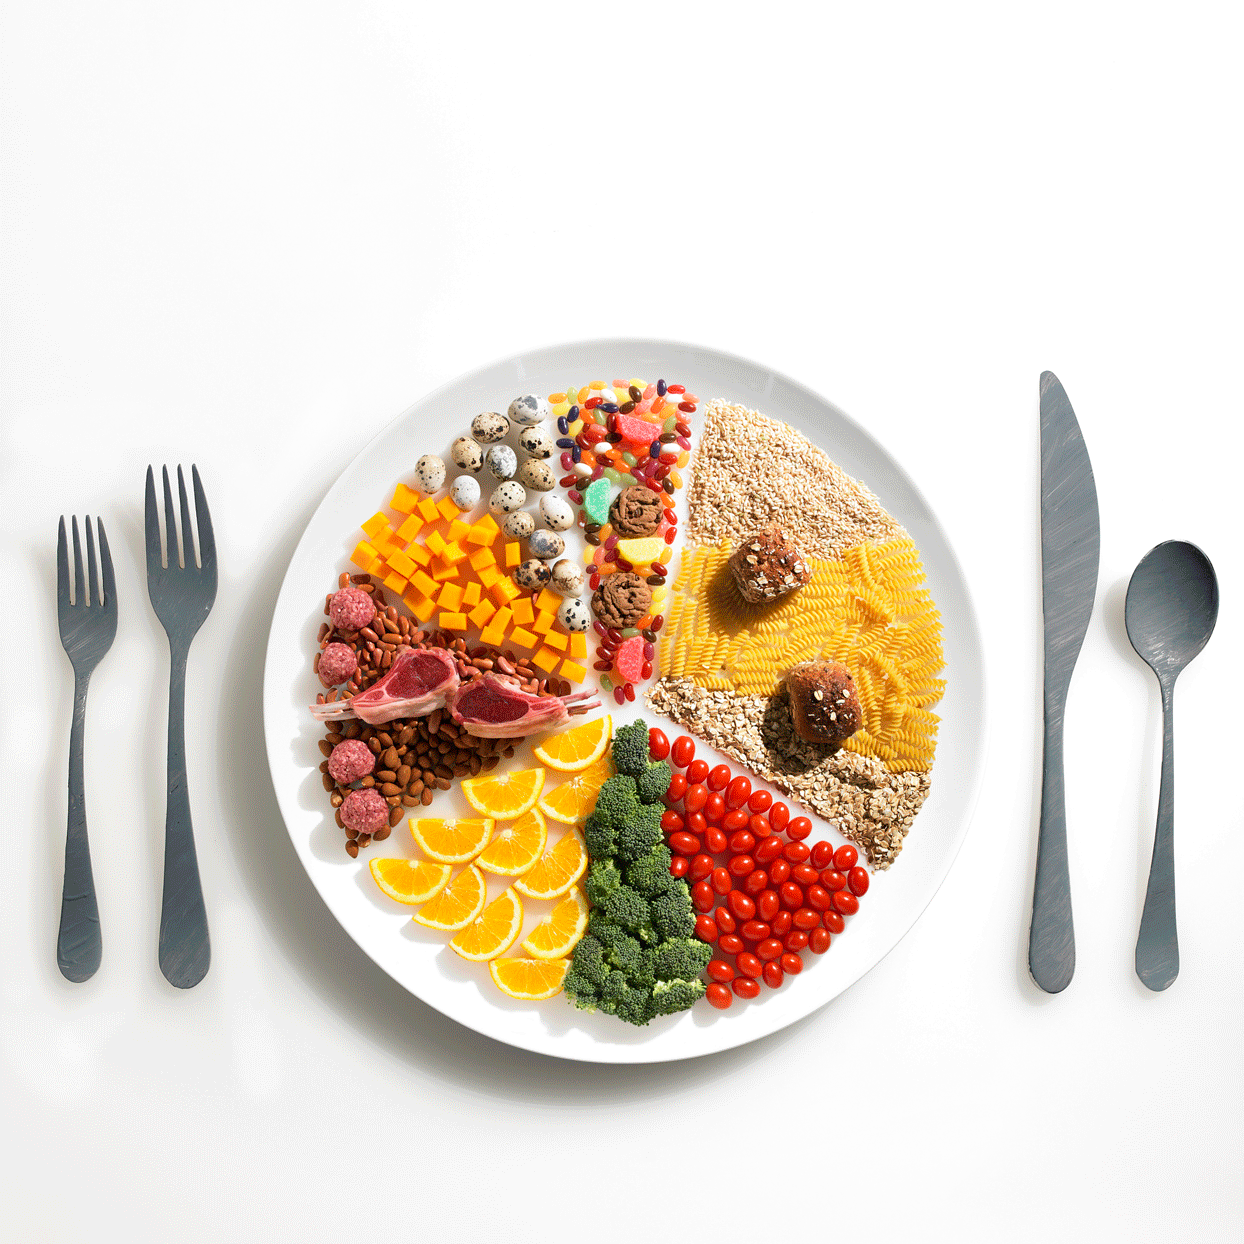 many different types of food organized neatly on a white plate